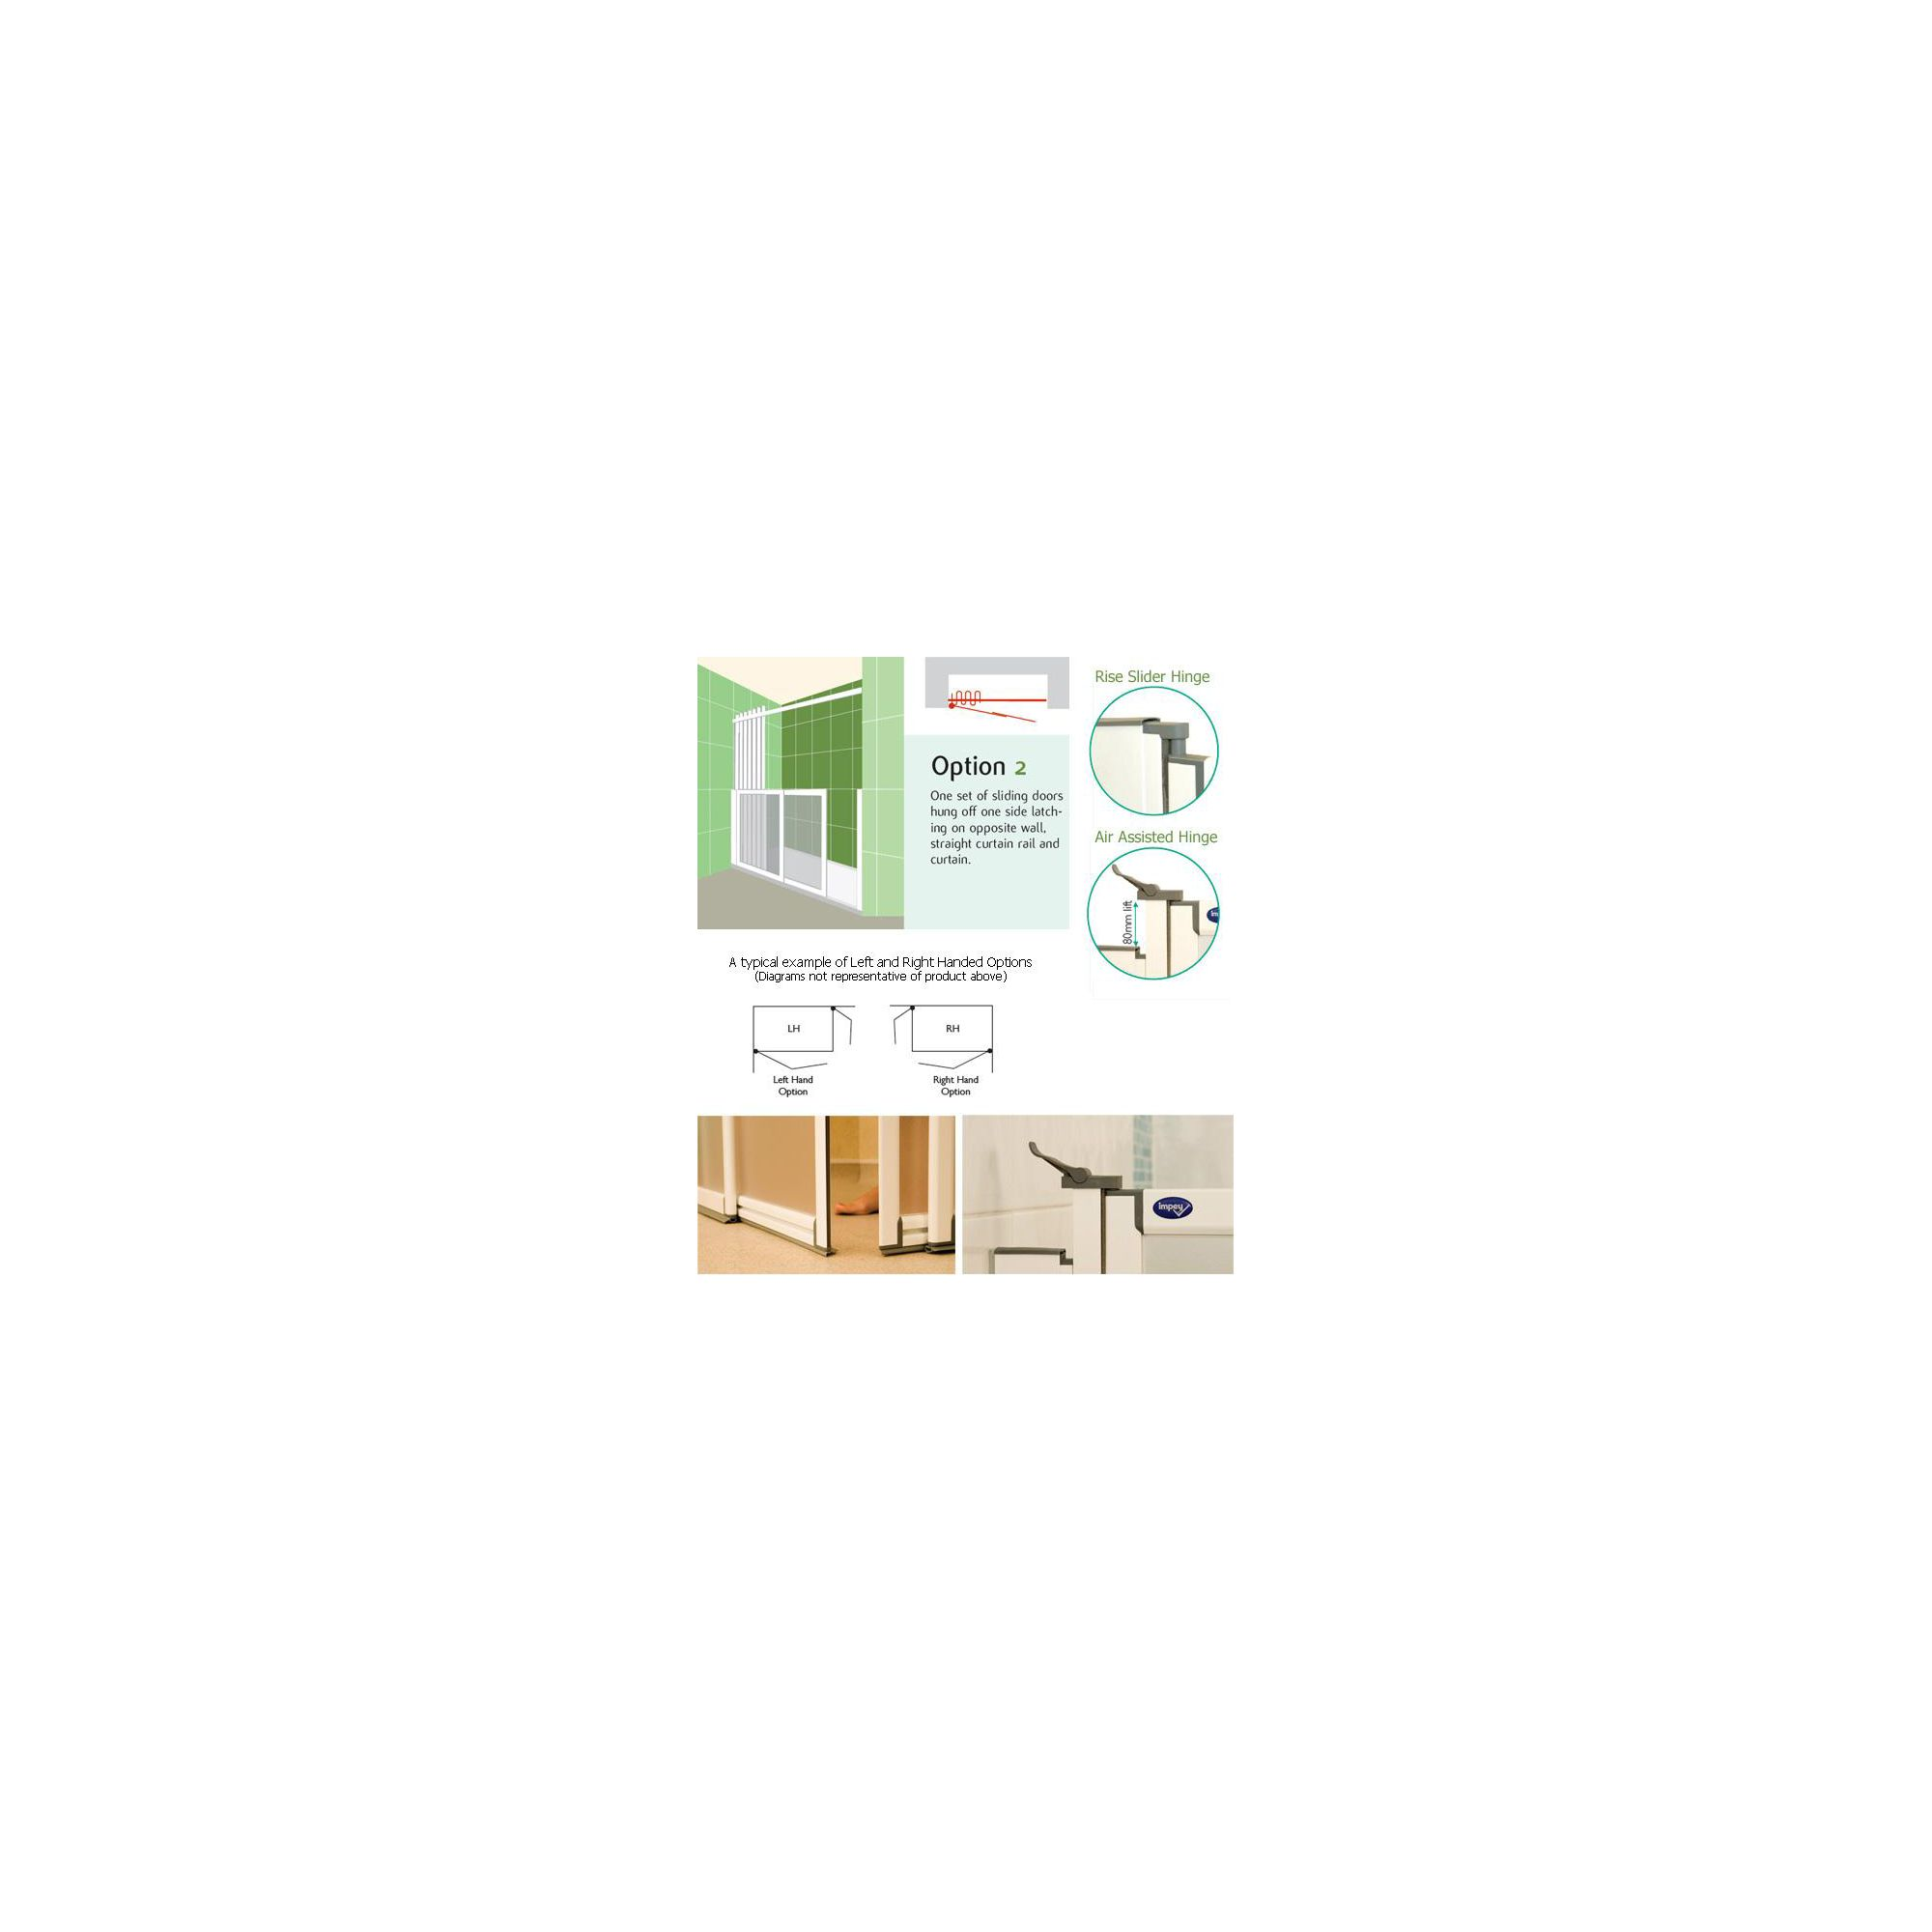 Impey Touch 'N' Go Shower Doors OPTION 2 at Tesco Direct